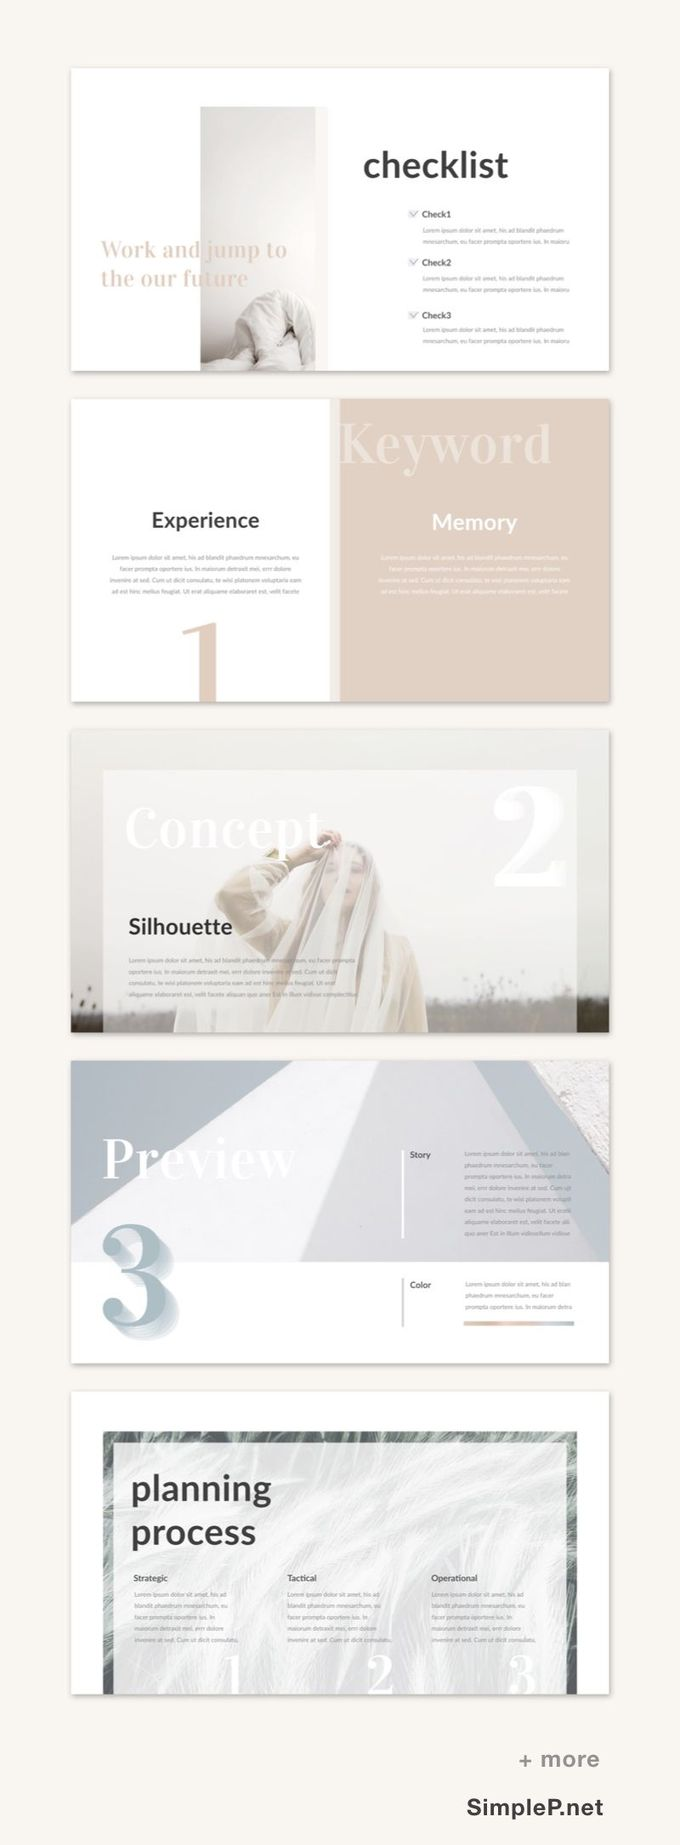 清洁主题演讲PPT模板#simple #minimal #minimalist #presentation #template #simplep #planning #process #keyword #slide #checklist #key #keynote #pale